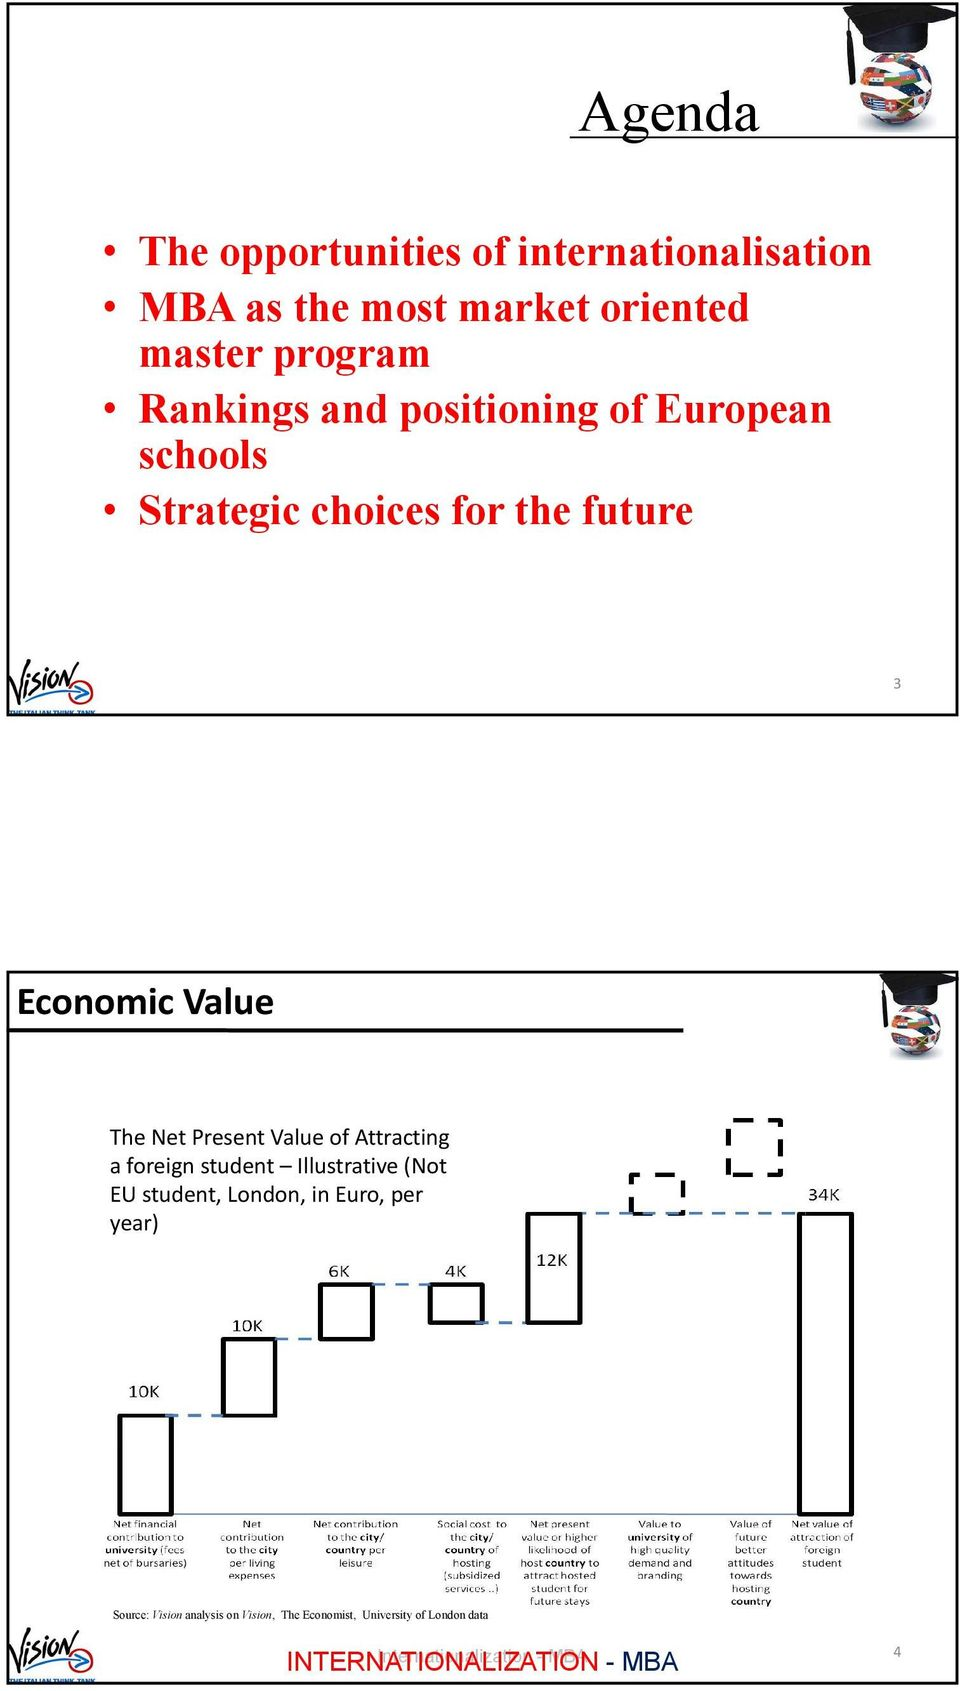 Value The Net Present Value of Attracting a foreign student Illustrative (Not EU student,